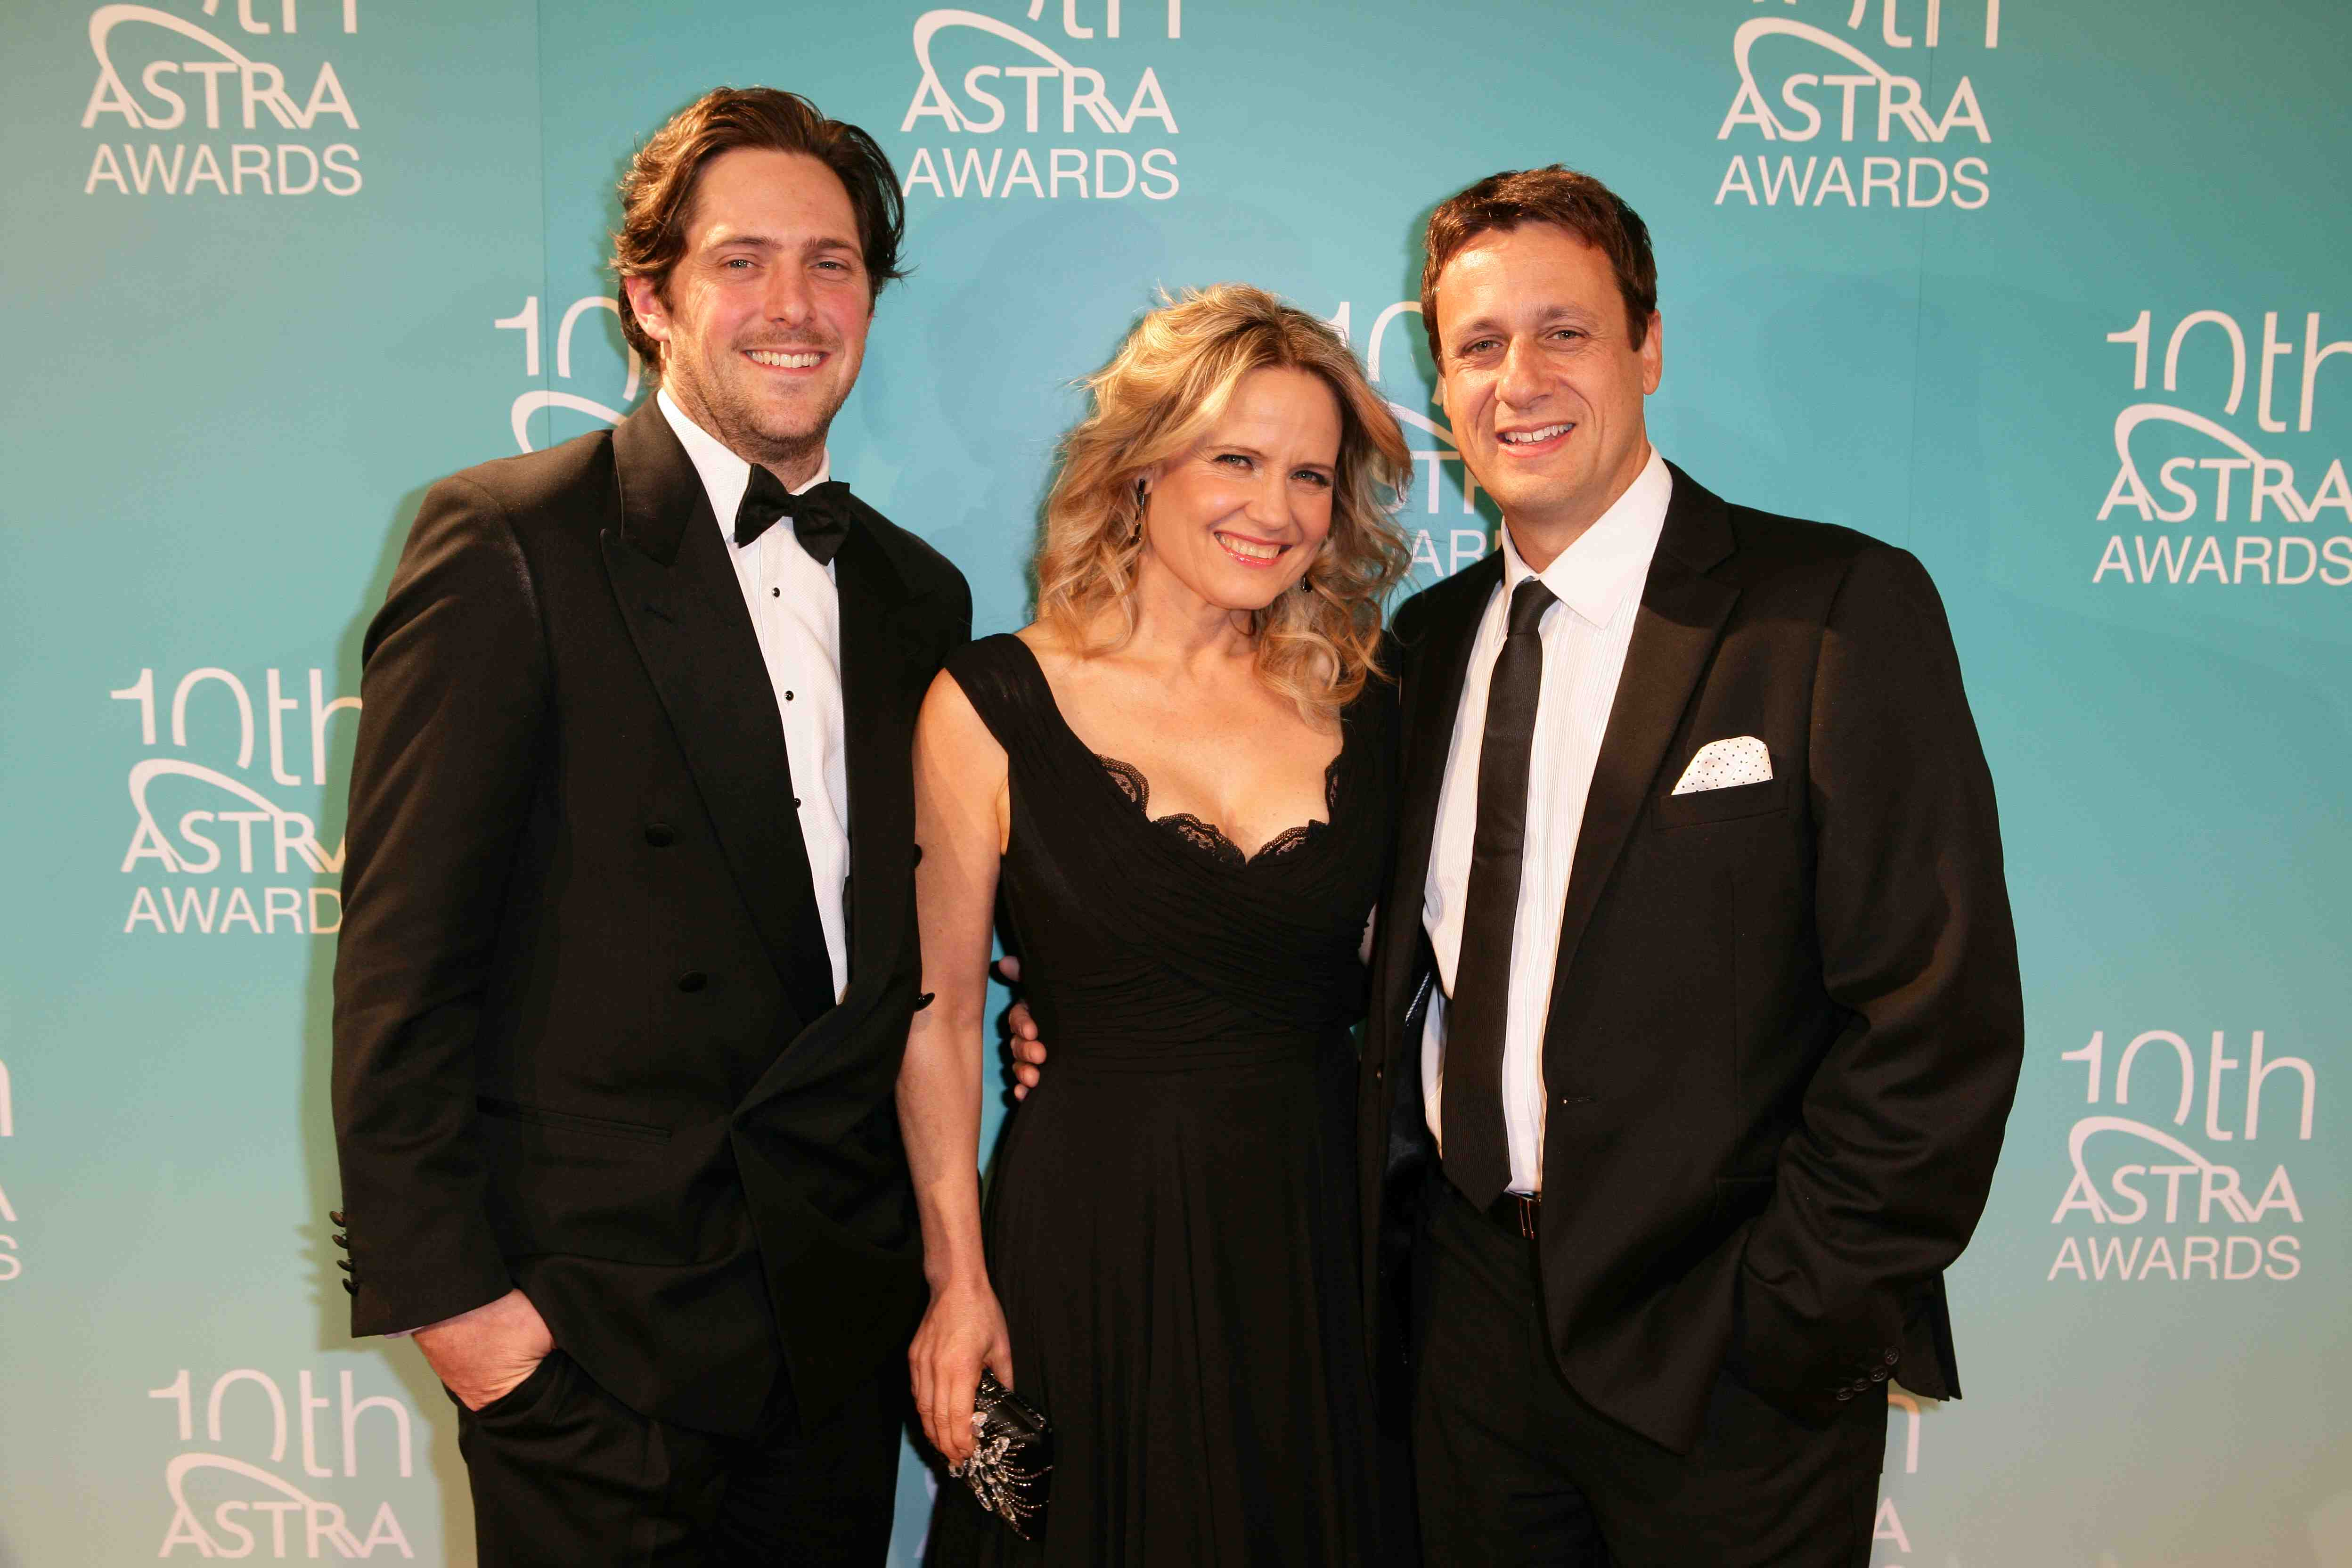 Charlie, Shaynna and Andrew at the 10th Annual Astra Awards. Photo courtesy of astra.org.au